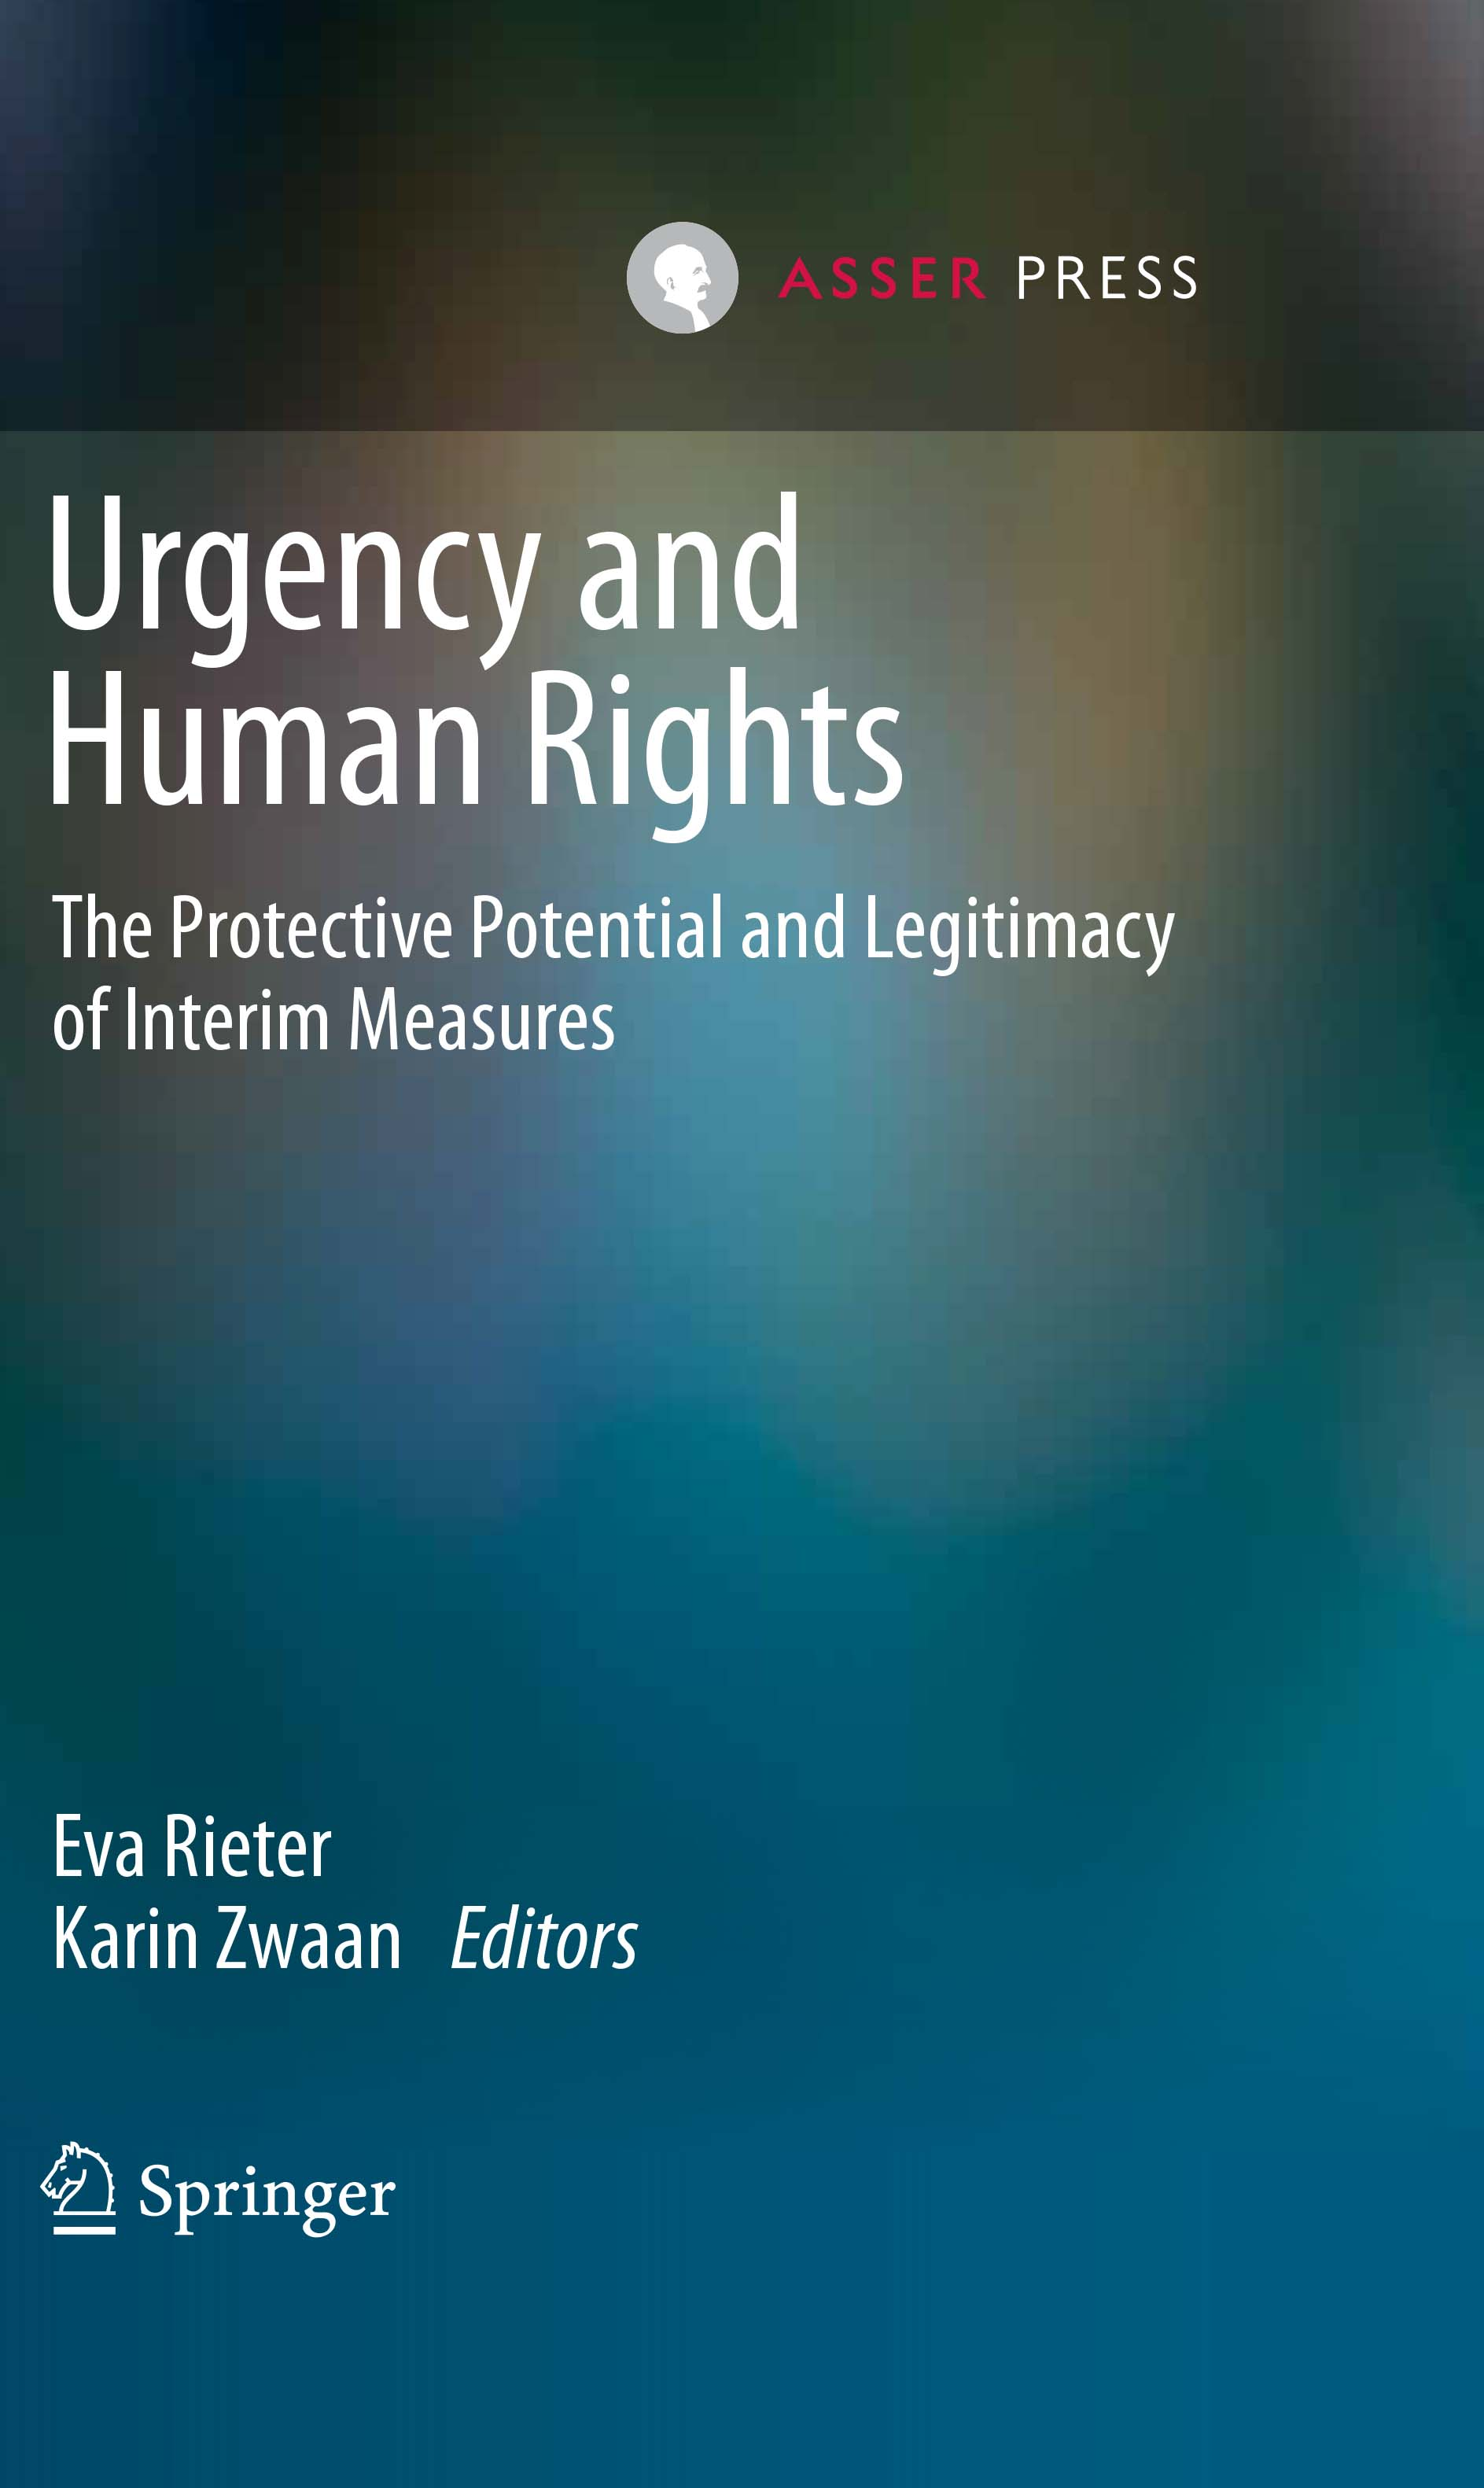 Urgency and Human Rights - The Protective Potential and Legitimacy of Interim Measures